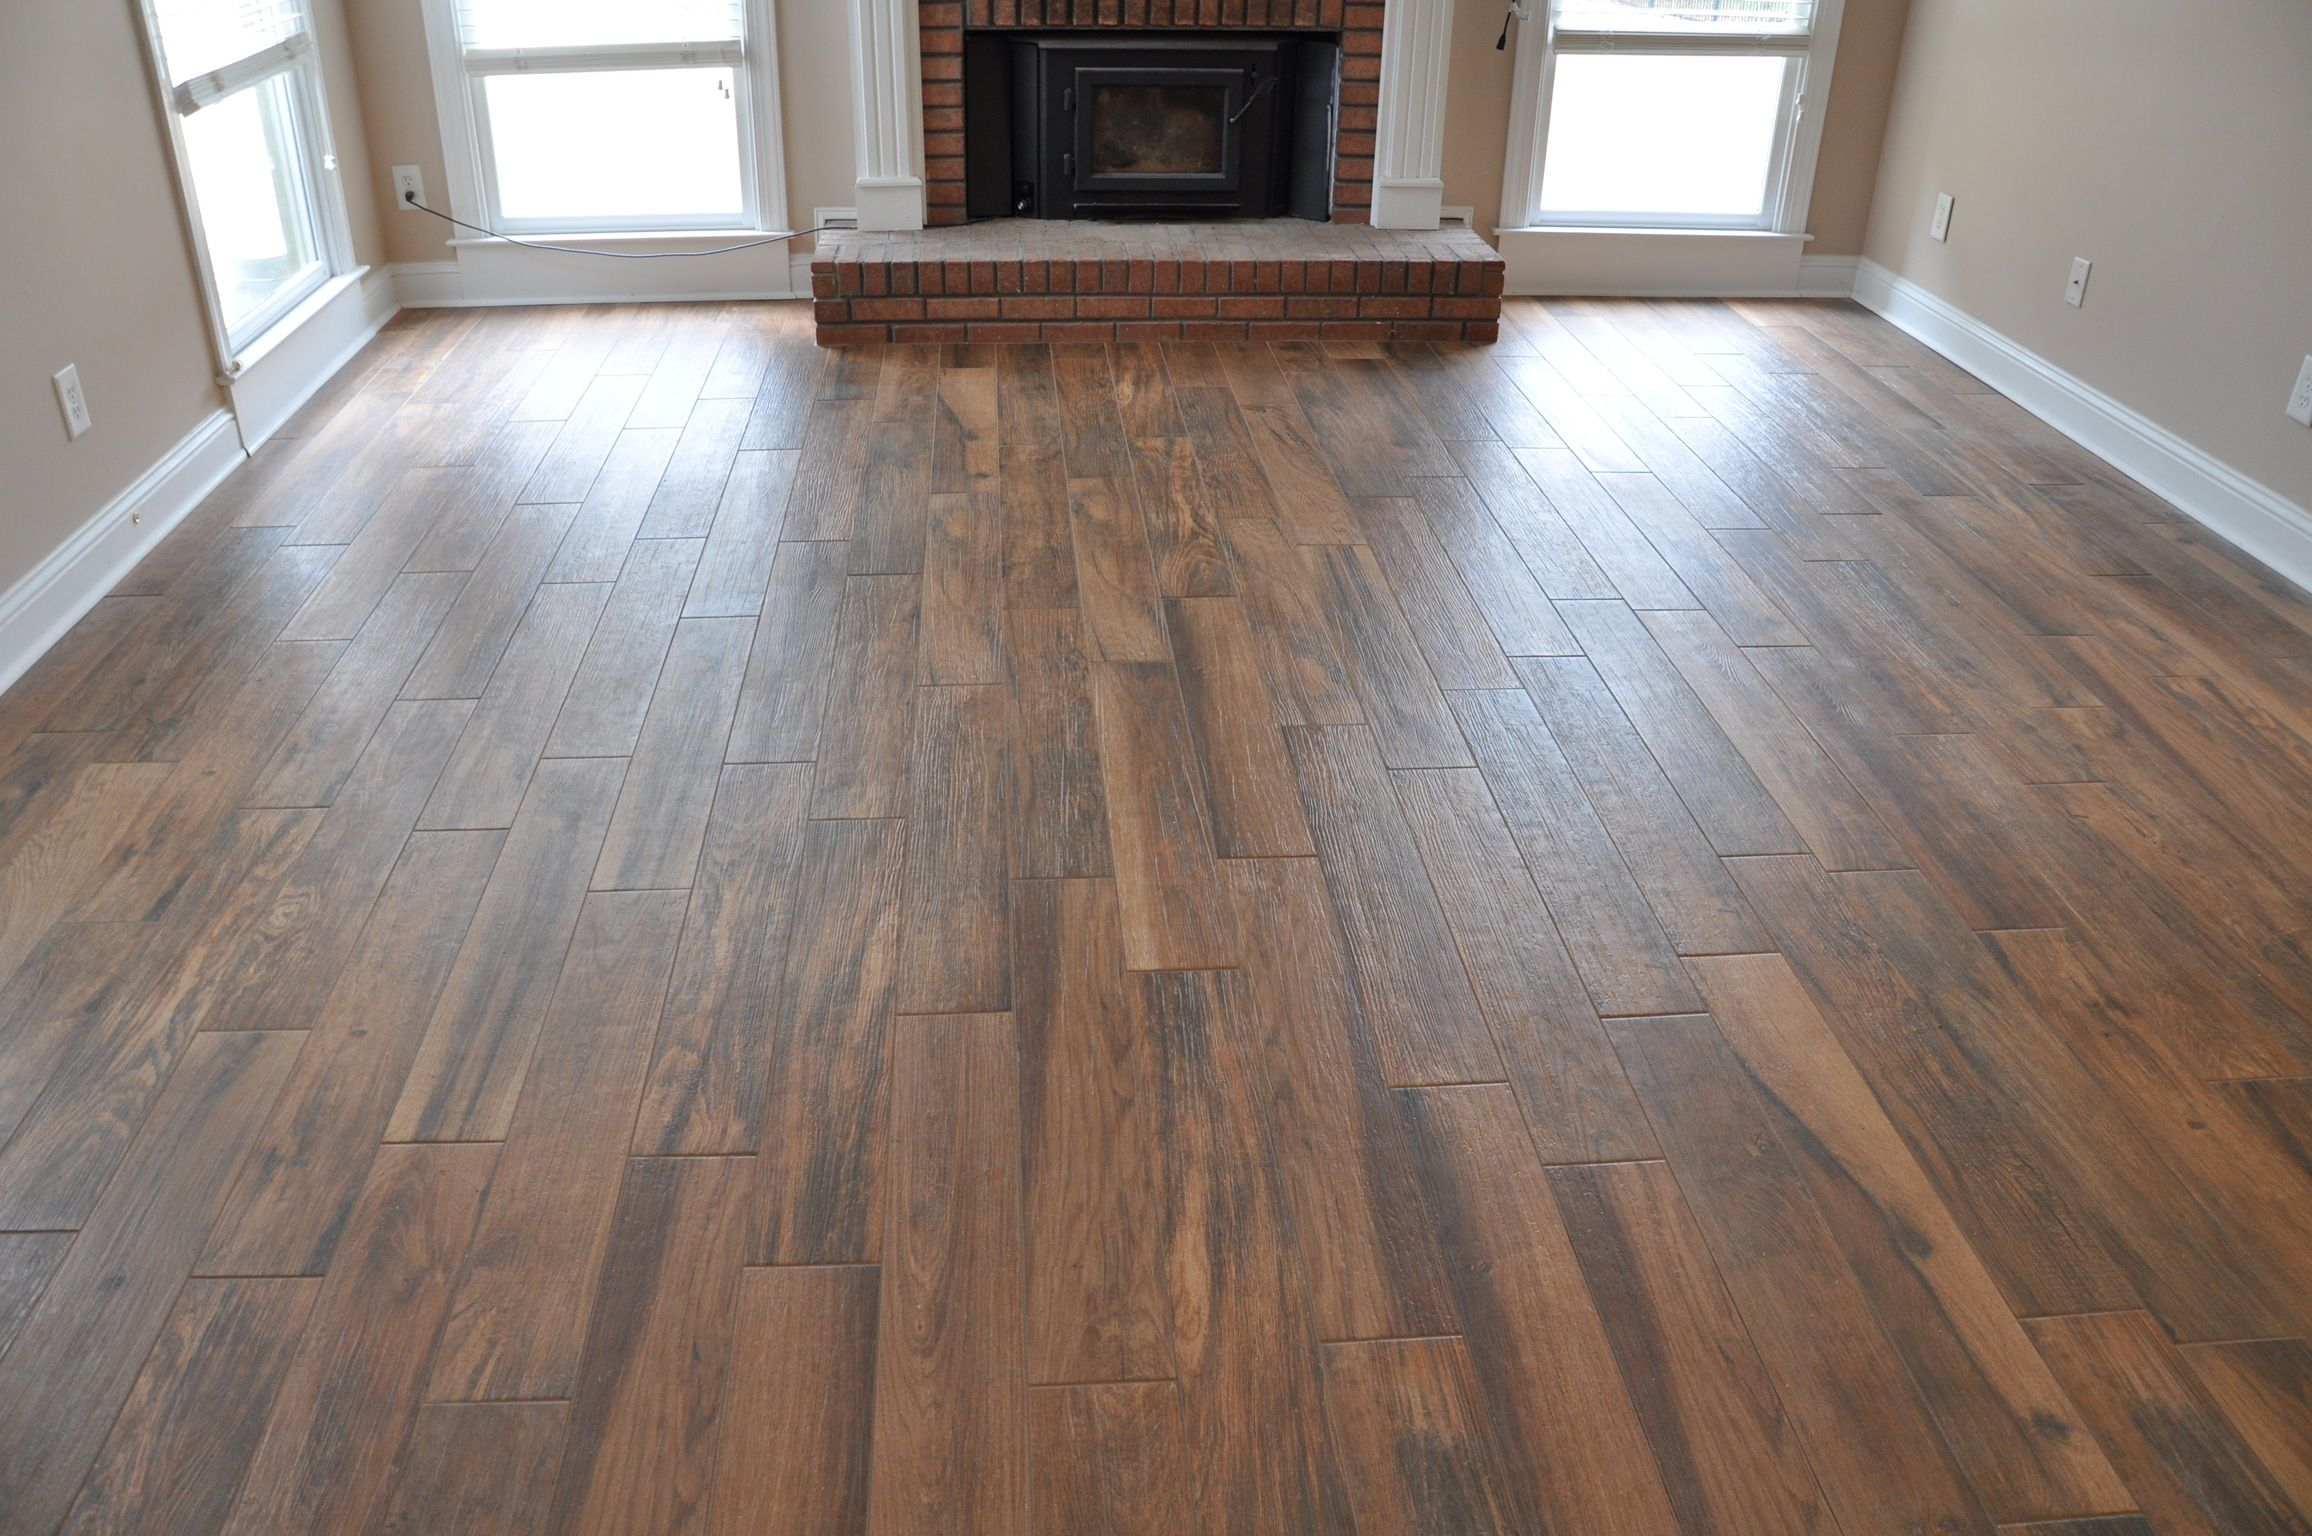 Wood look porcelain tile google search flooring pinterest wood look tile porcelain Wood tile flooring